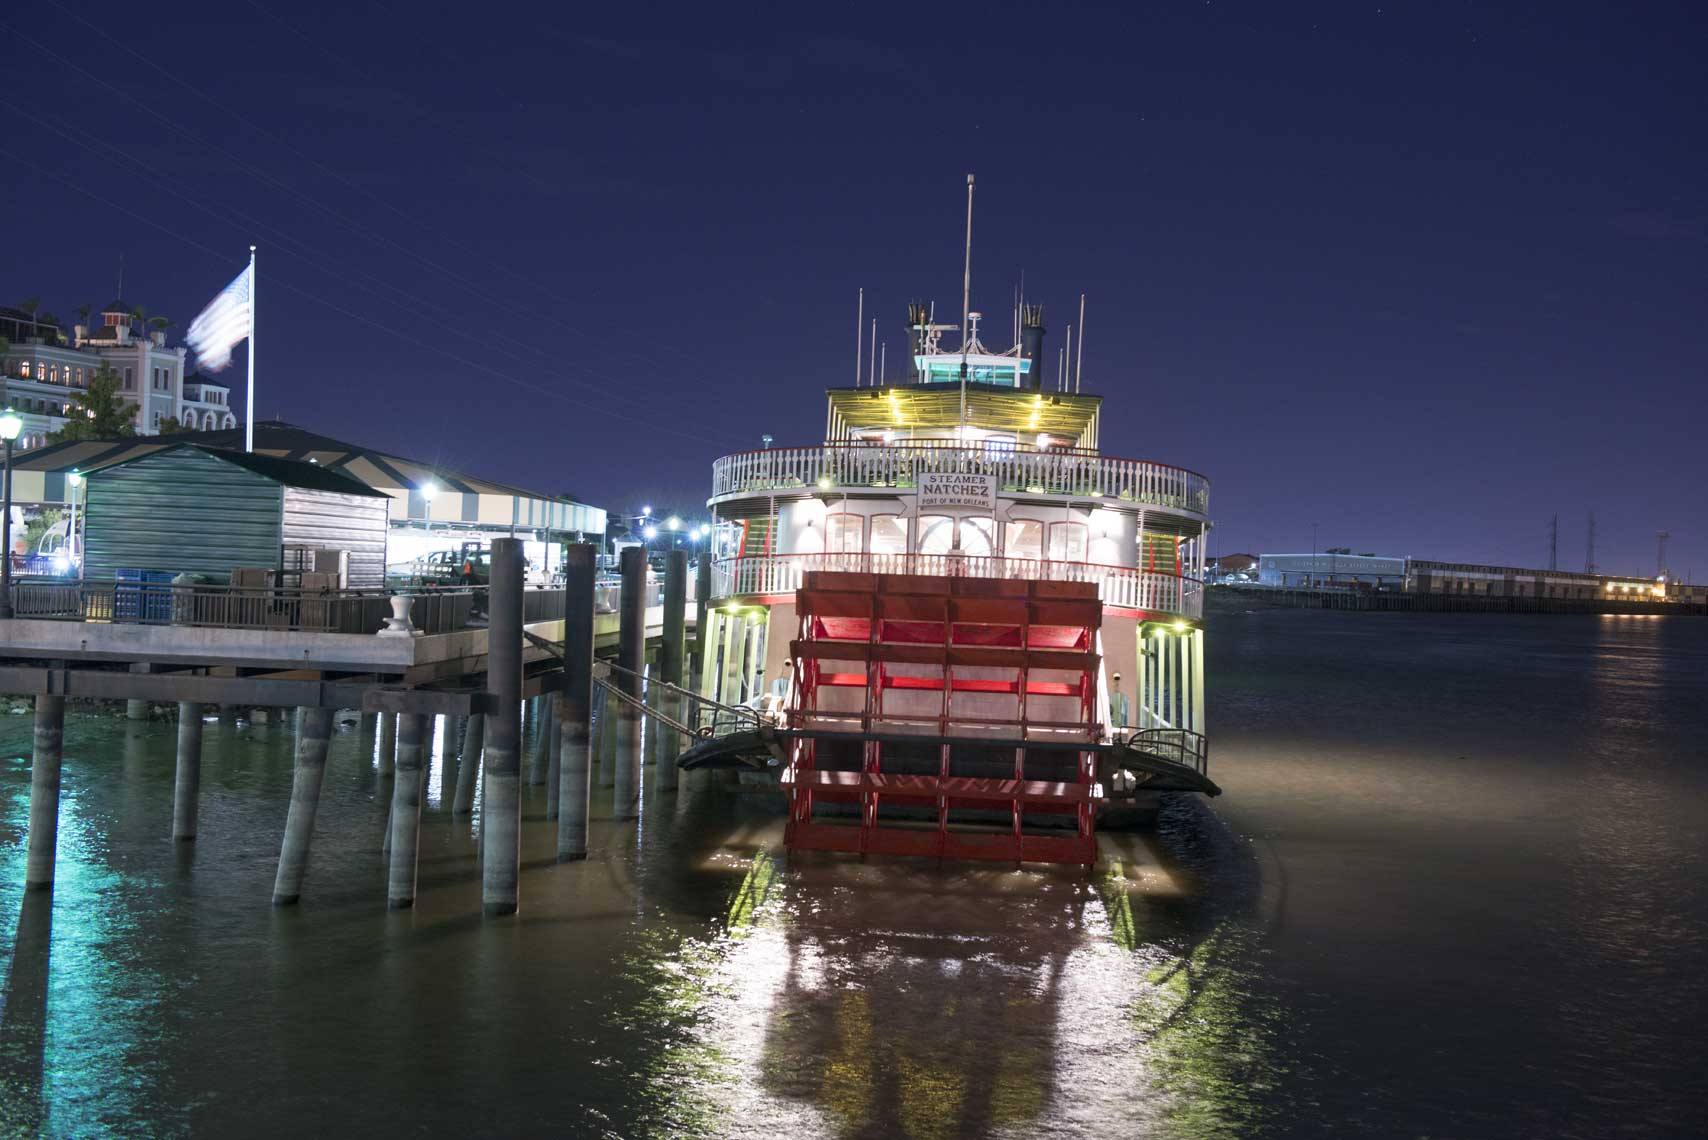 ferry-at-night-in-new-orleans